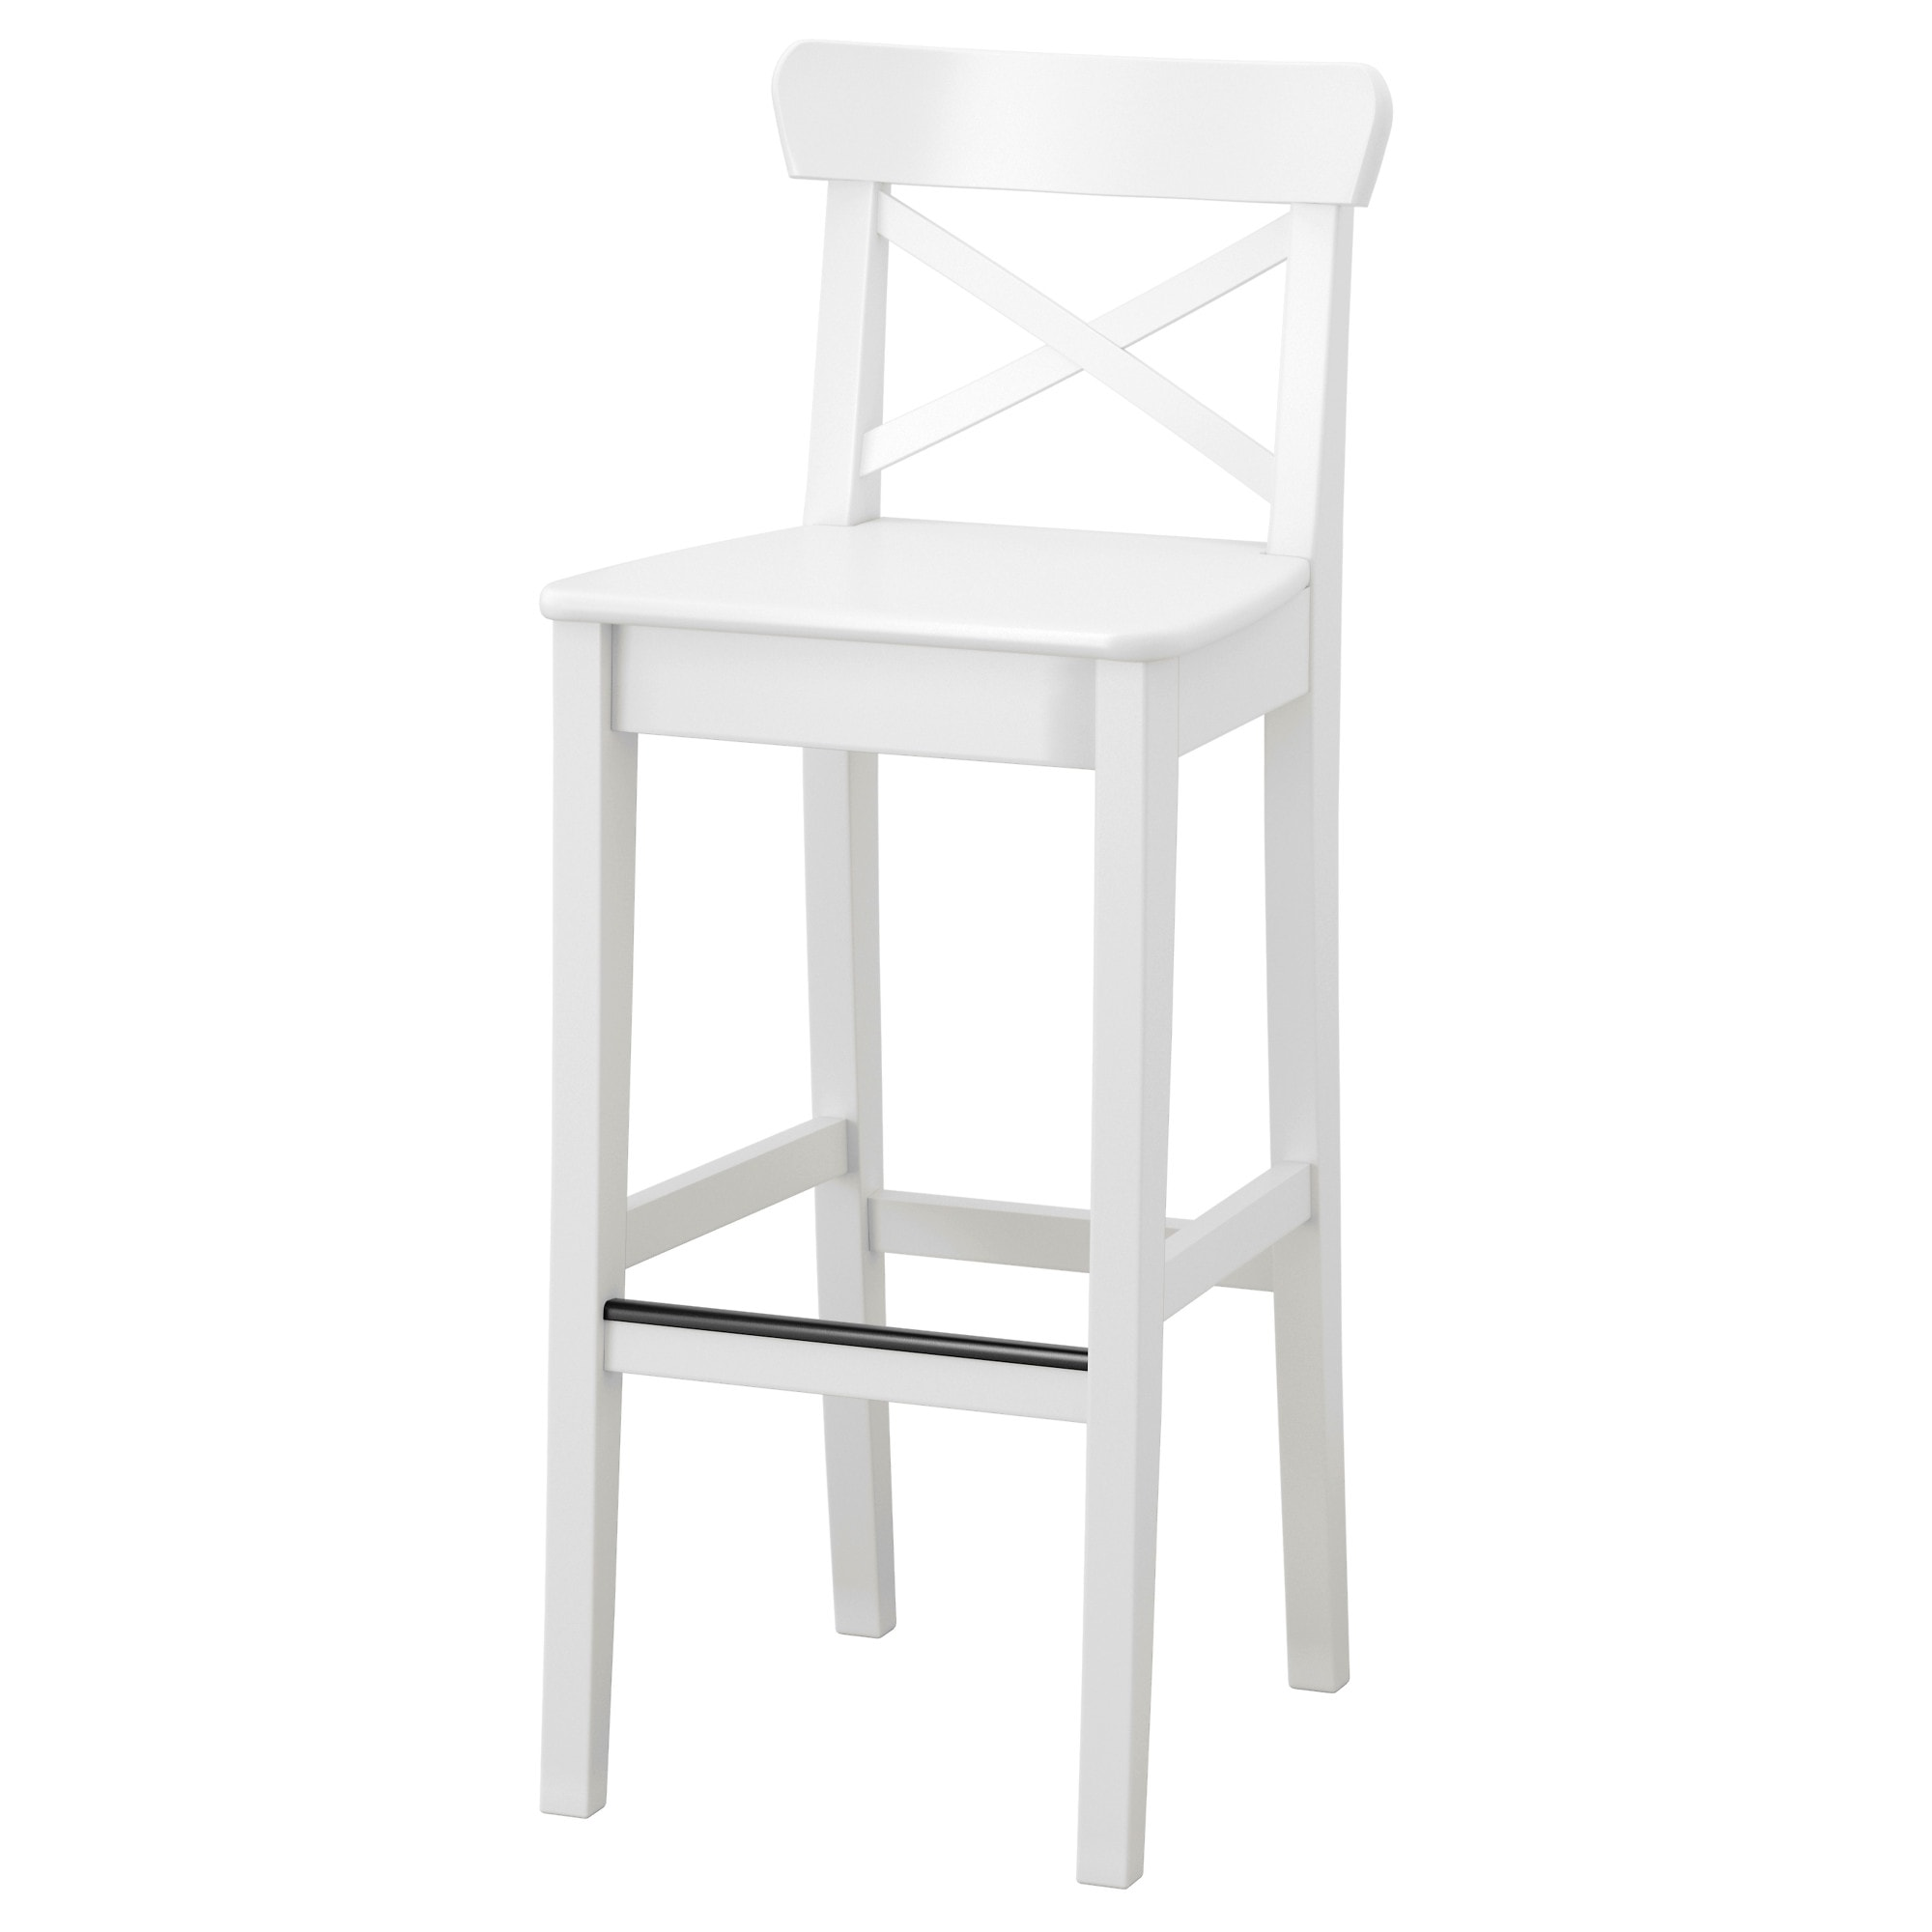 INGOLF bar stool with backrest white Tested for 220 lb Width 15 3  sc 1 st  Ikea & Bar Stools - IKEA islam-shia.org